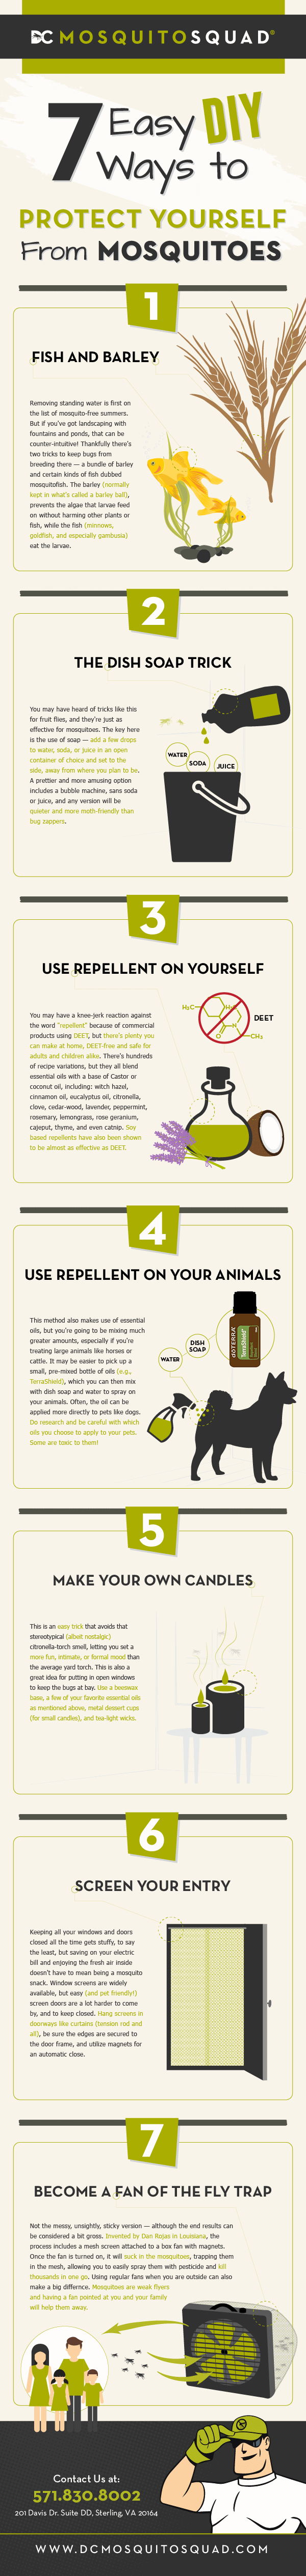 Infographic on 7 easy ways to protect yourself from mosquitoes